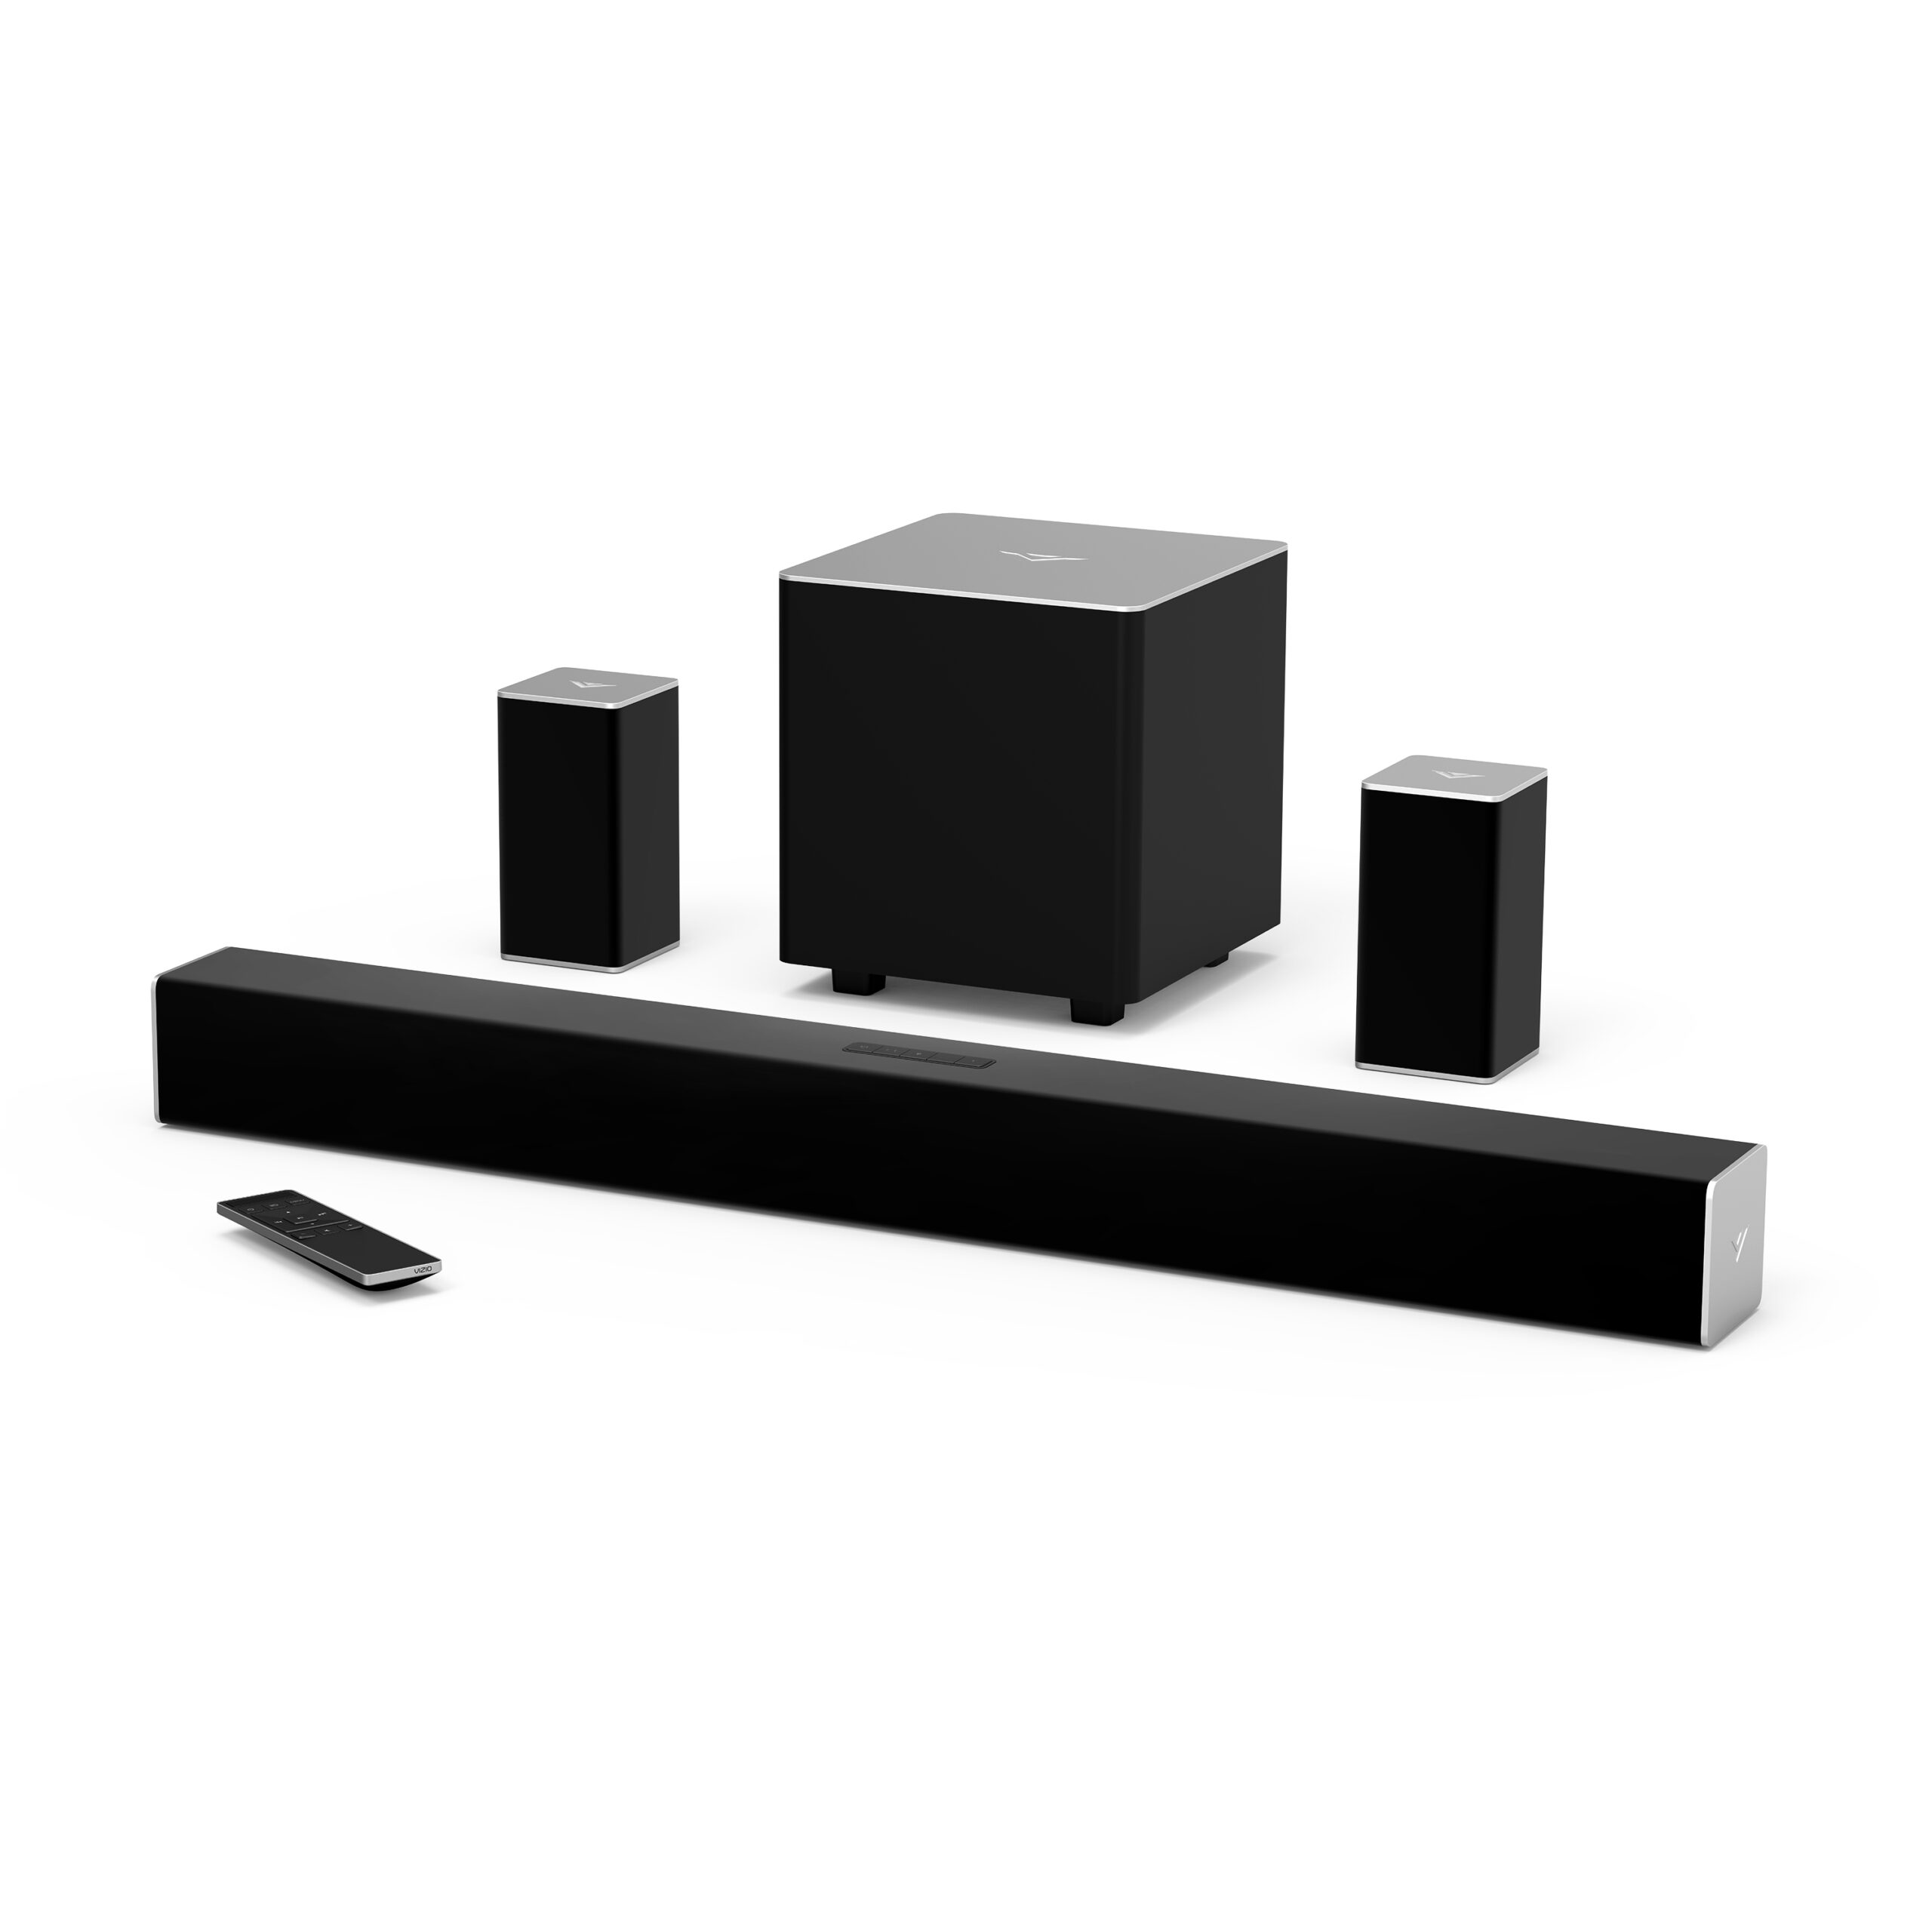 VIZIO 32″ 4.1 Sound Bar Coupon Code Walmart Black Friday 2020